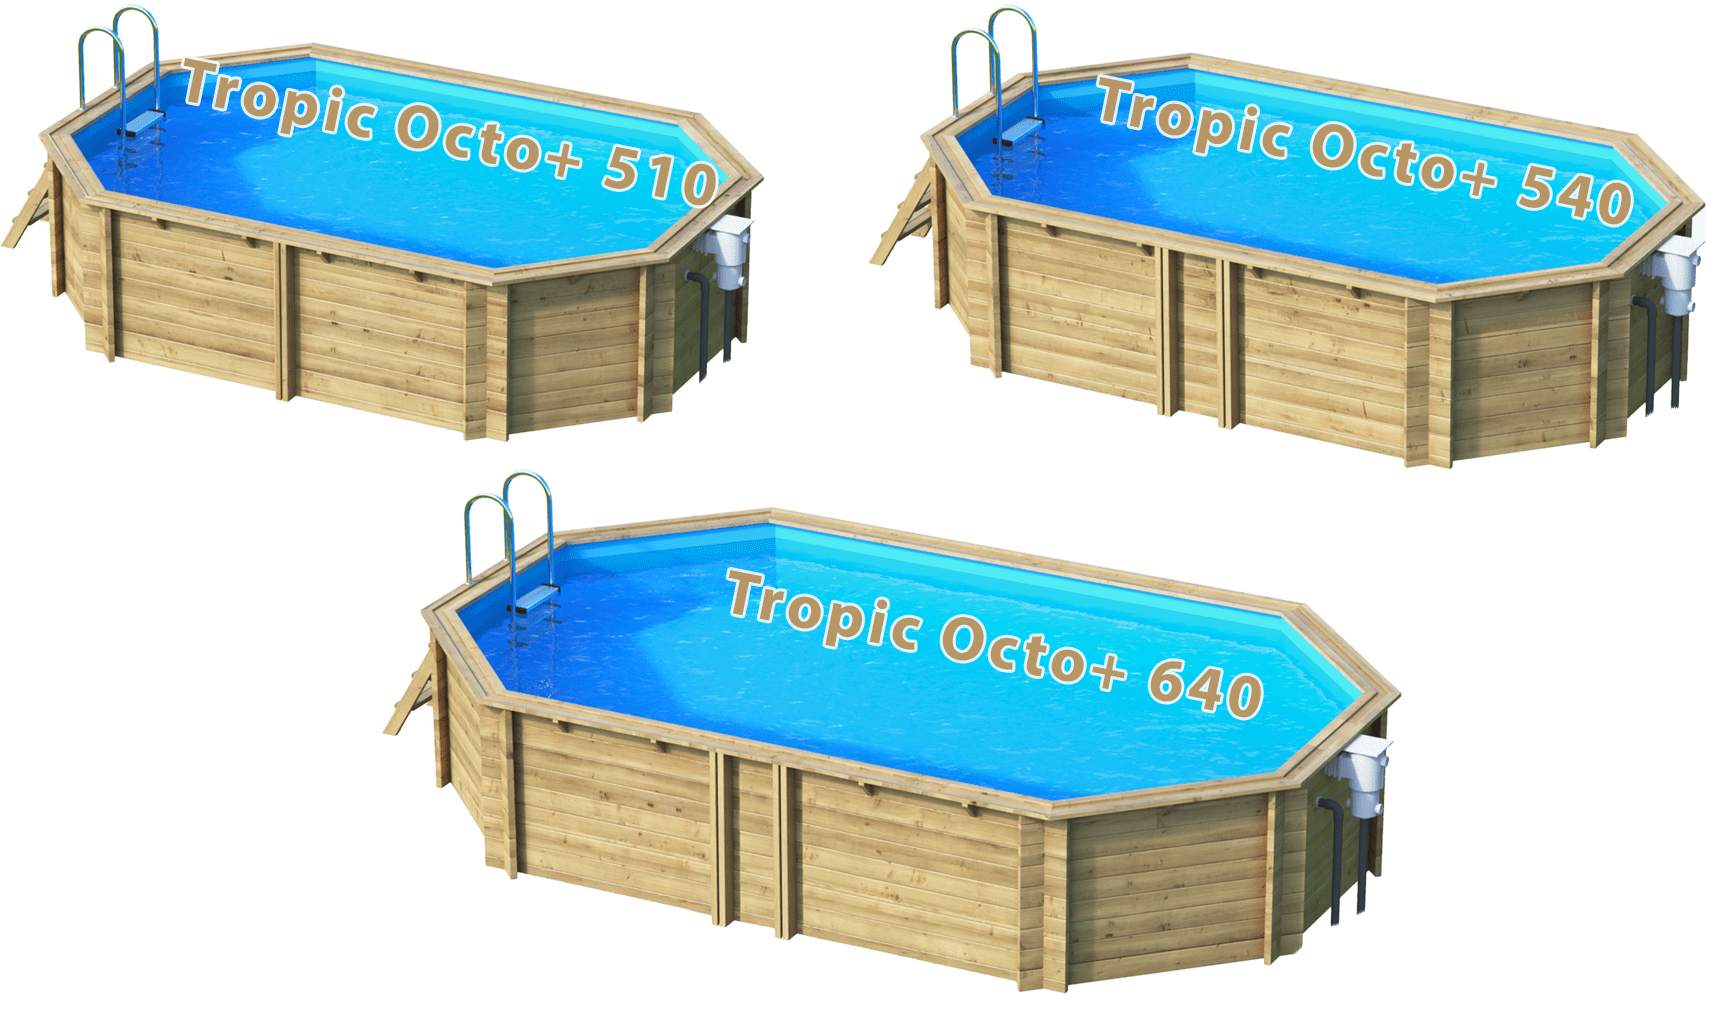 Infinity Pool Komplettset Pool Aus Massivholz Tropic Octo 43 Sunday Pools Onlineshop